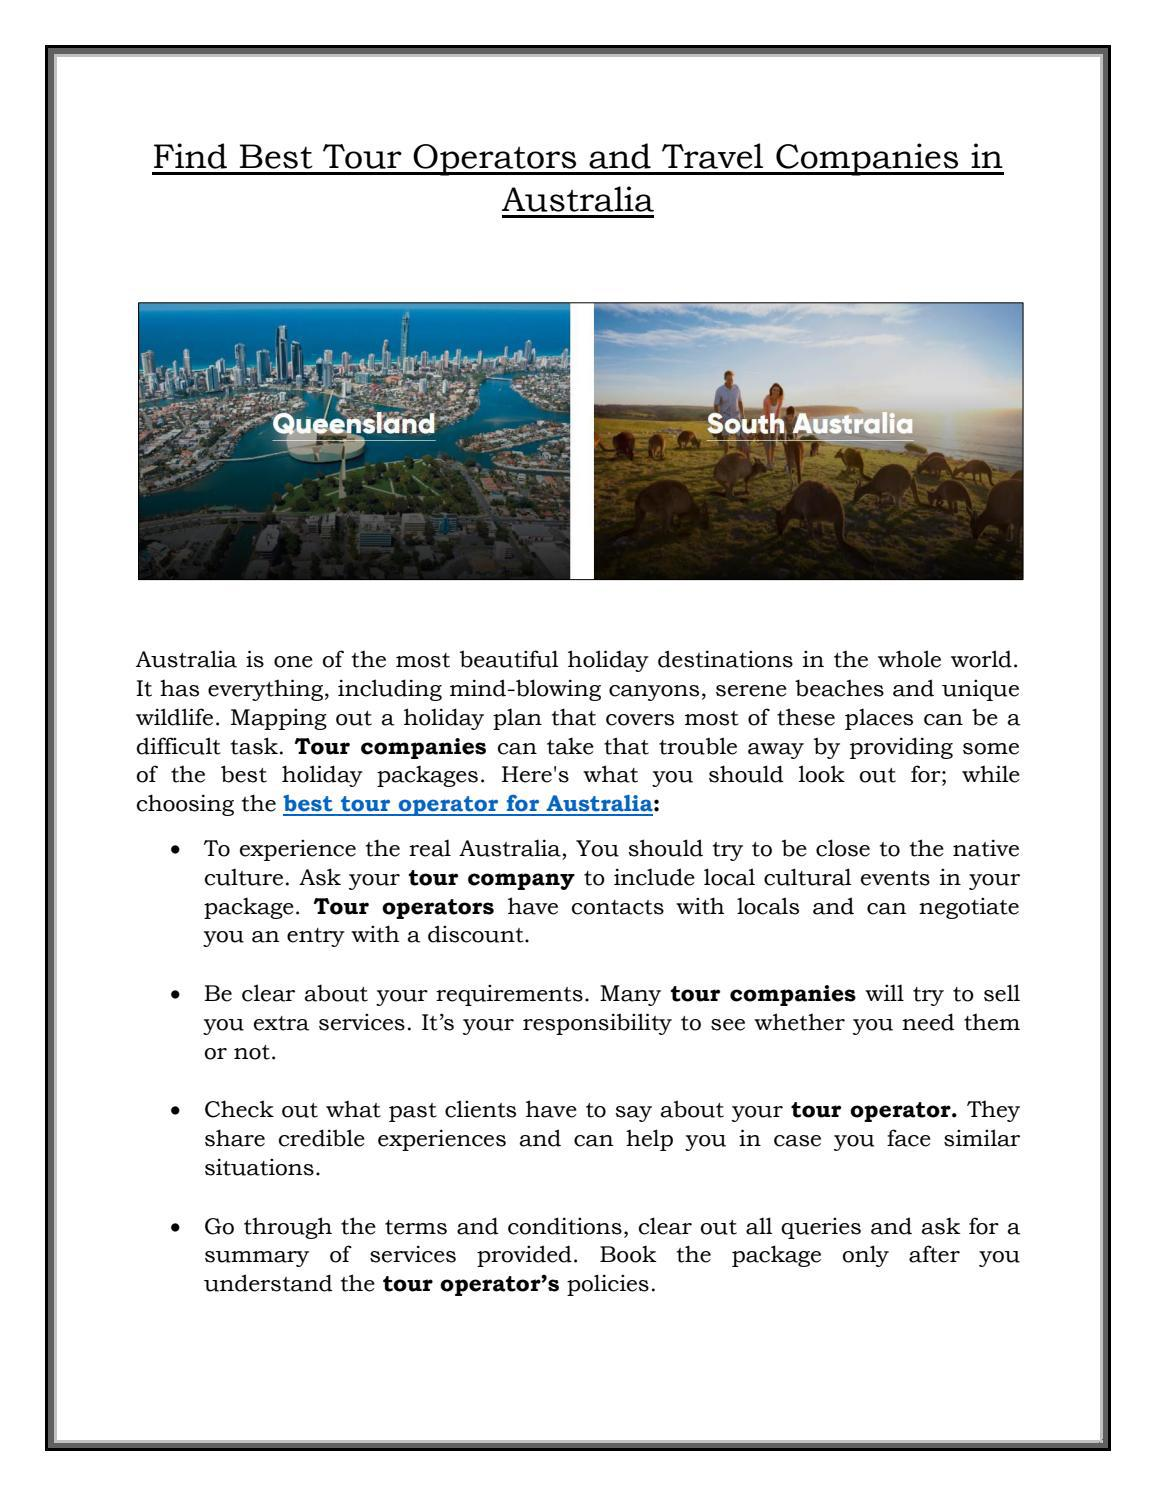 Find Best Tour Operators and Travel Companies in Australia